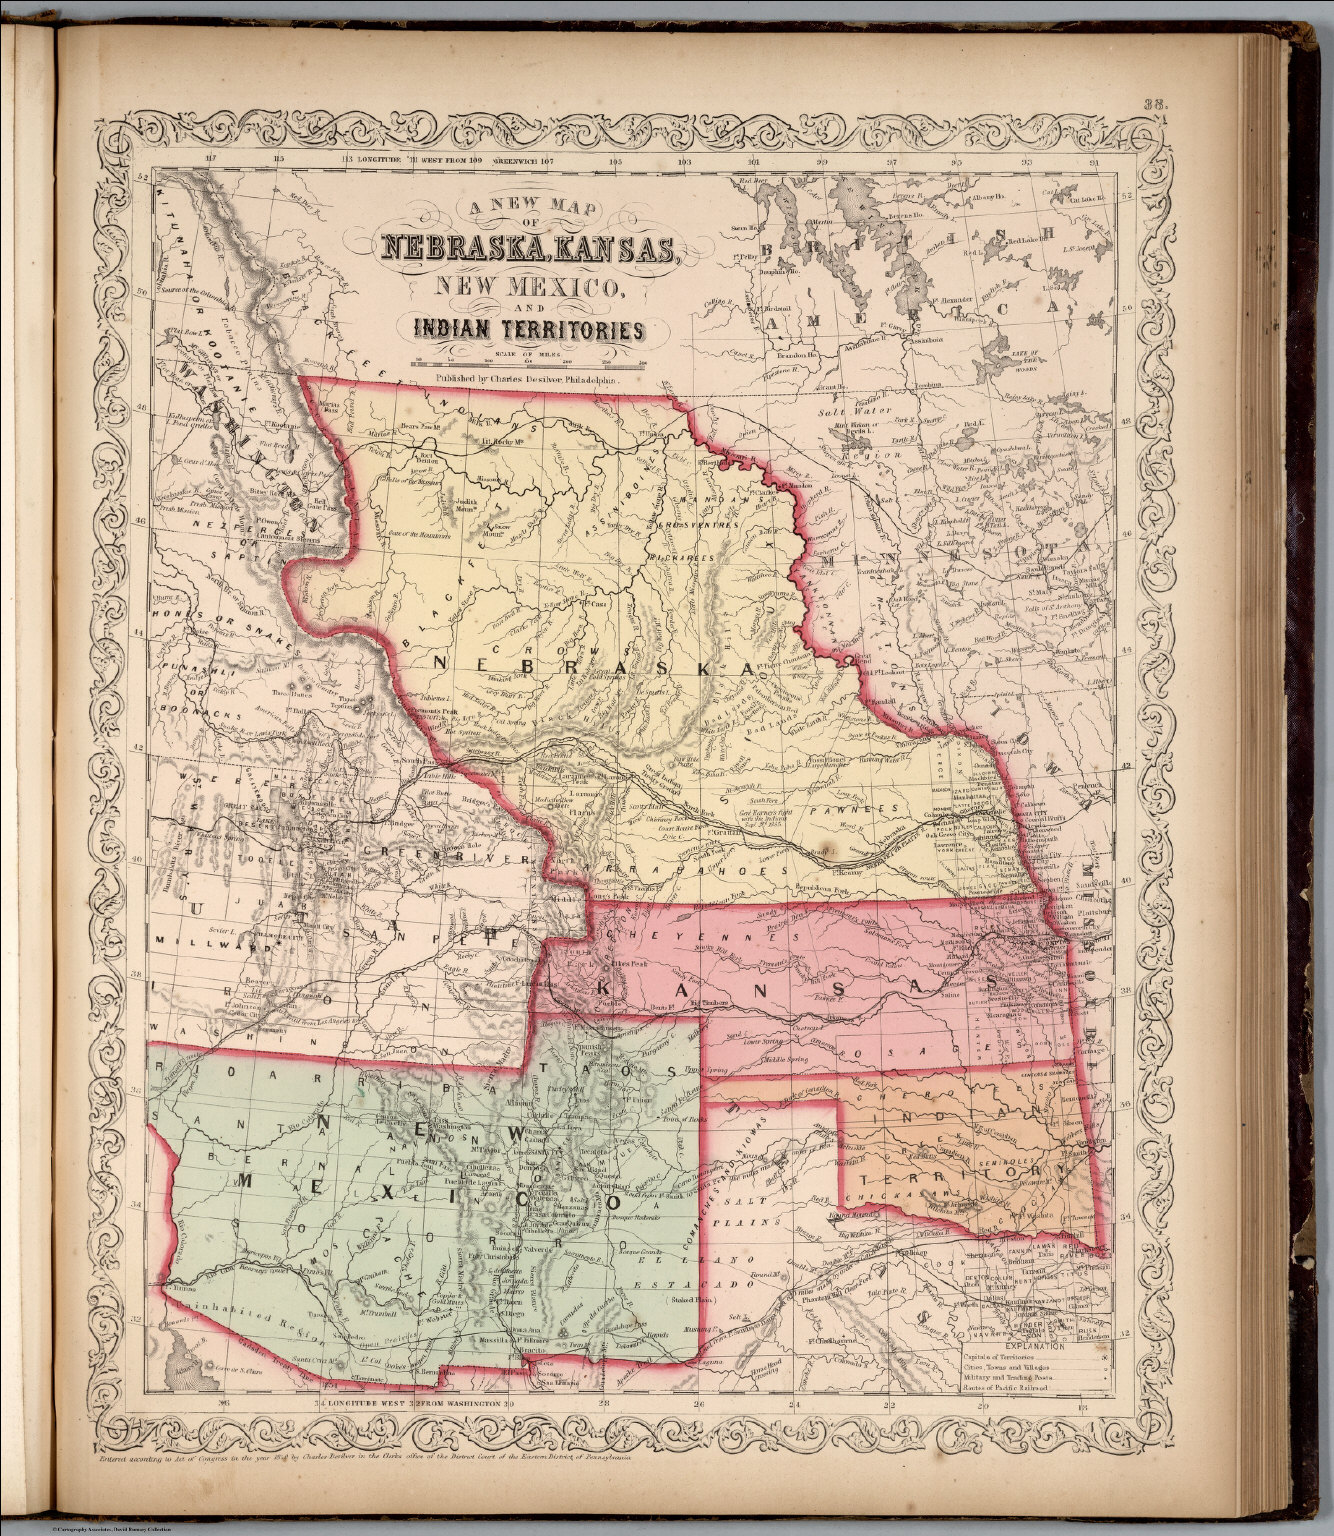 Nebraska kansas new mexico and indian territories david nebraska kansas new mexico and indian territories gumiabroncs Image collections